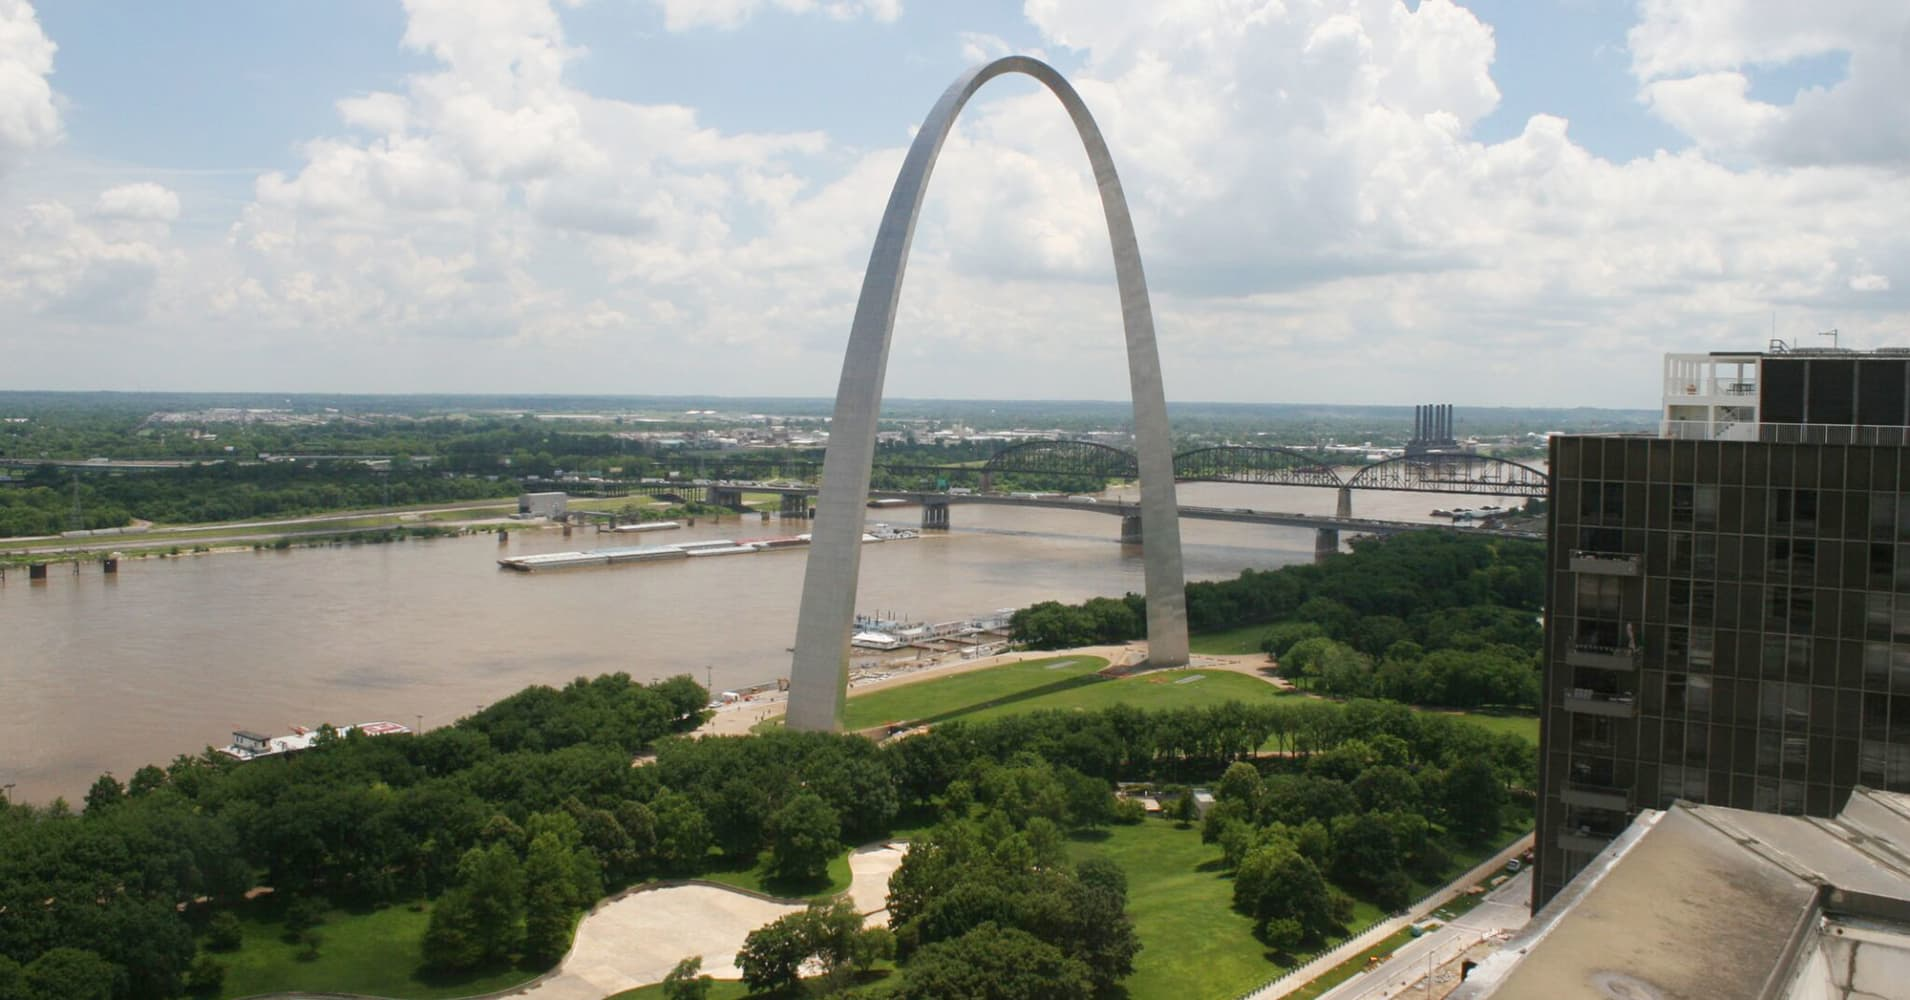 Daytime view of the iconic St. Louis Gateway Arch.